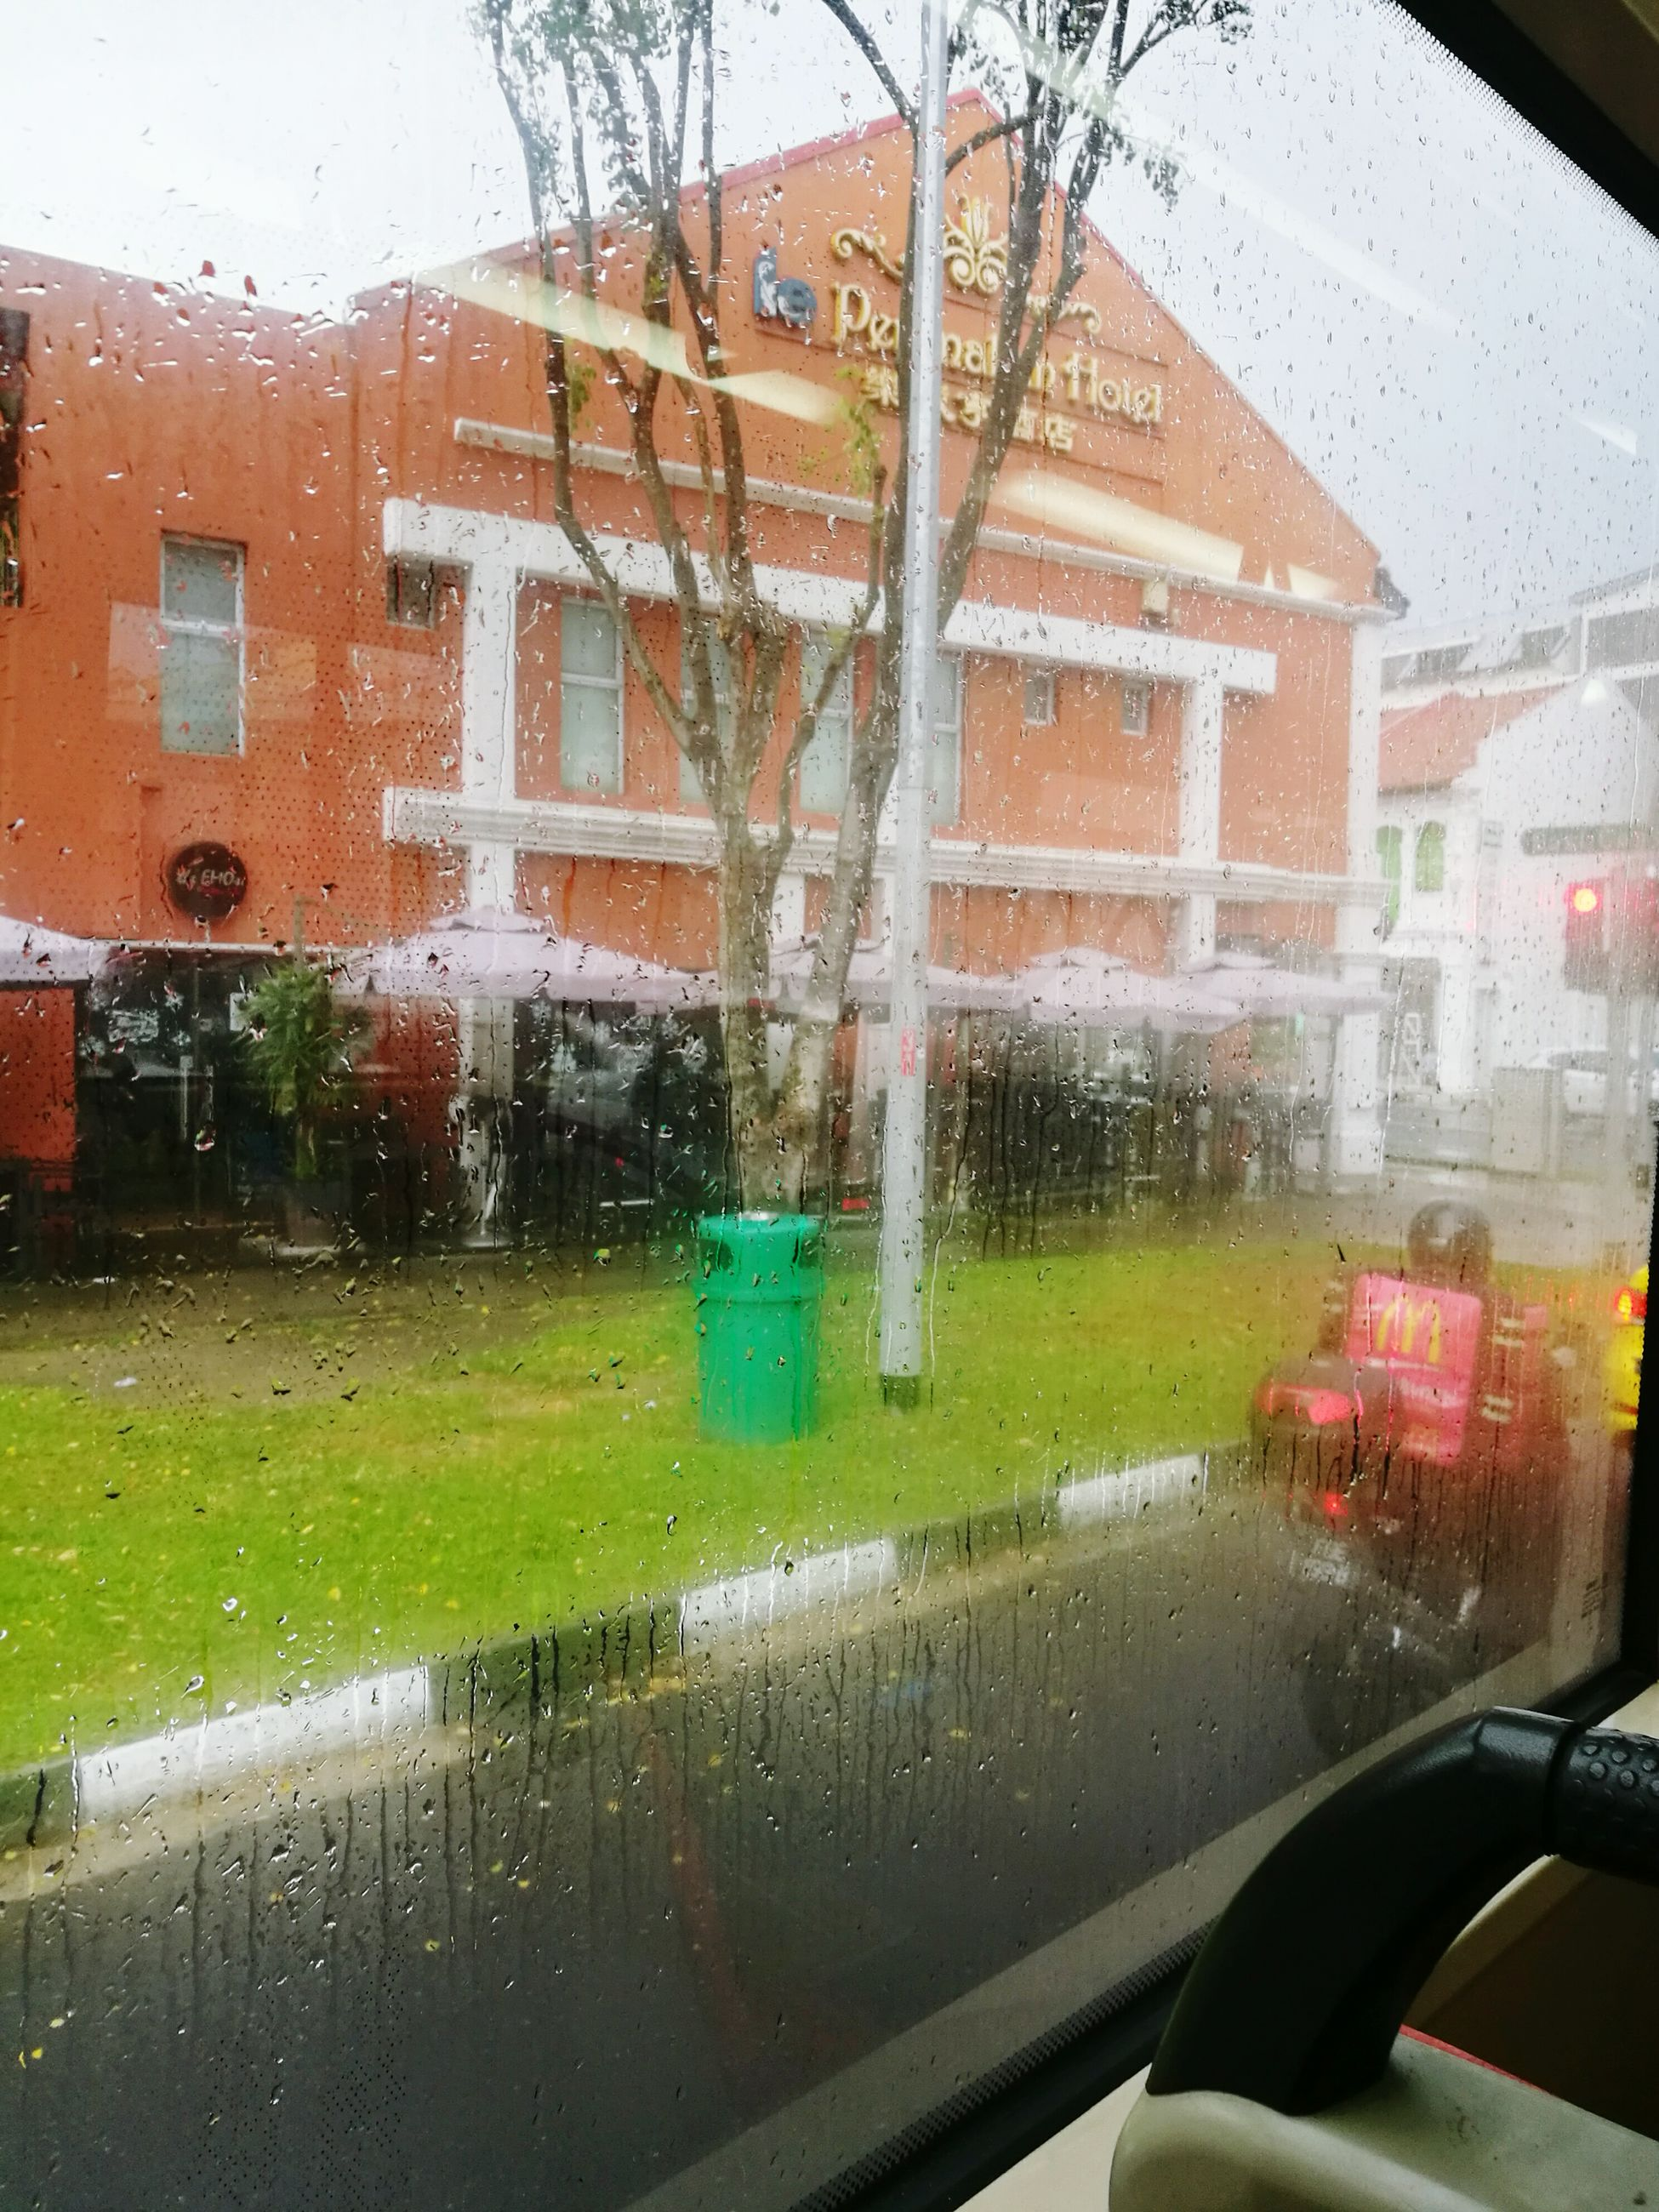 wet, glass - material, window, car, transportation, transparent, vehicle interior, land vehicle, mode of transport, weather, rain, water, drop, building exterior, rainy season, built structure, day, no people, architecture, sky, outdoors, close-up